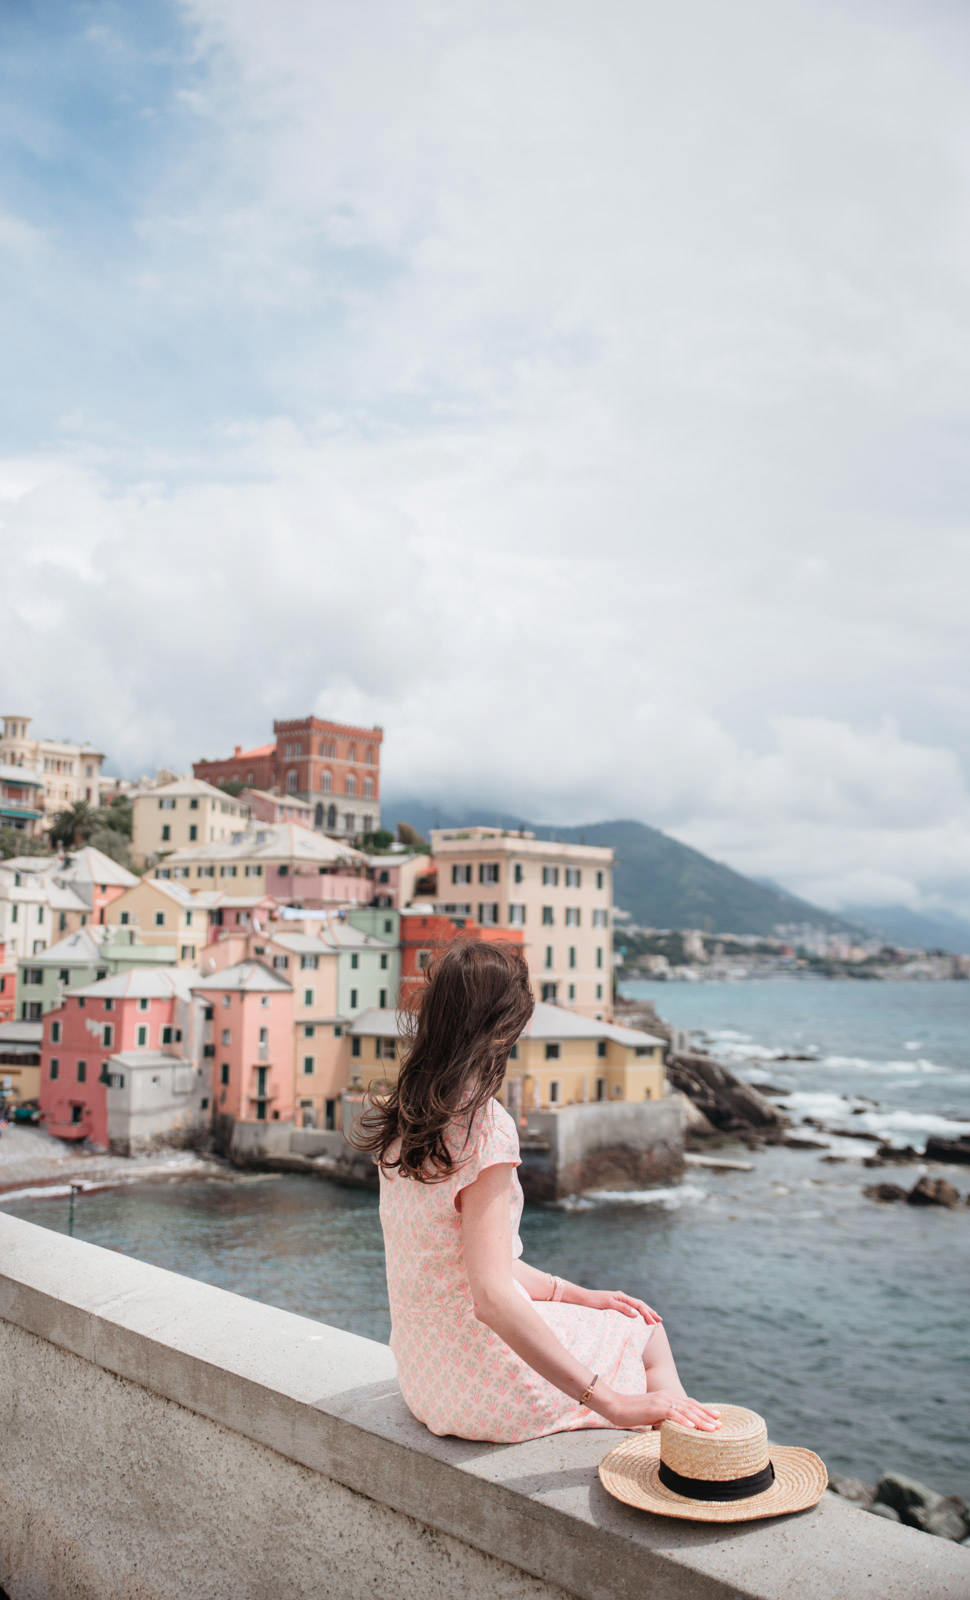 Blog-Mode-And-The-City-Lifestyle-Italie-Bocadasse-Camogli-Sestri-Levante-5